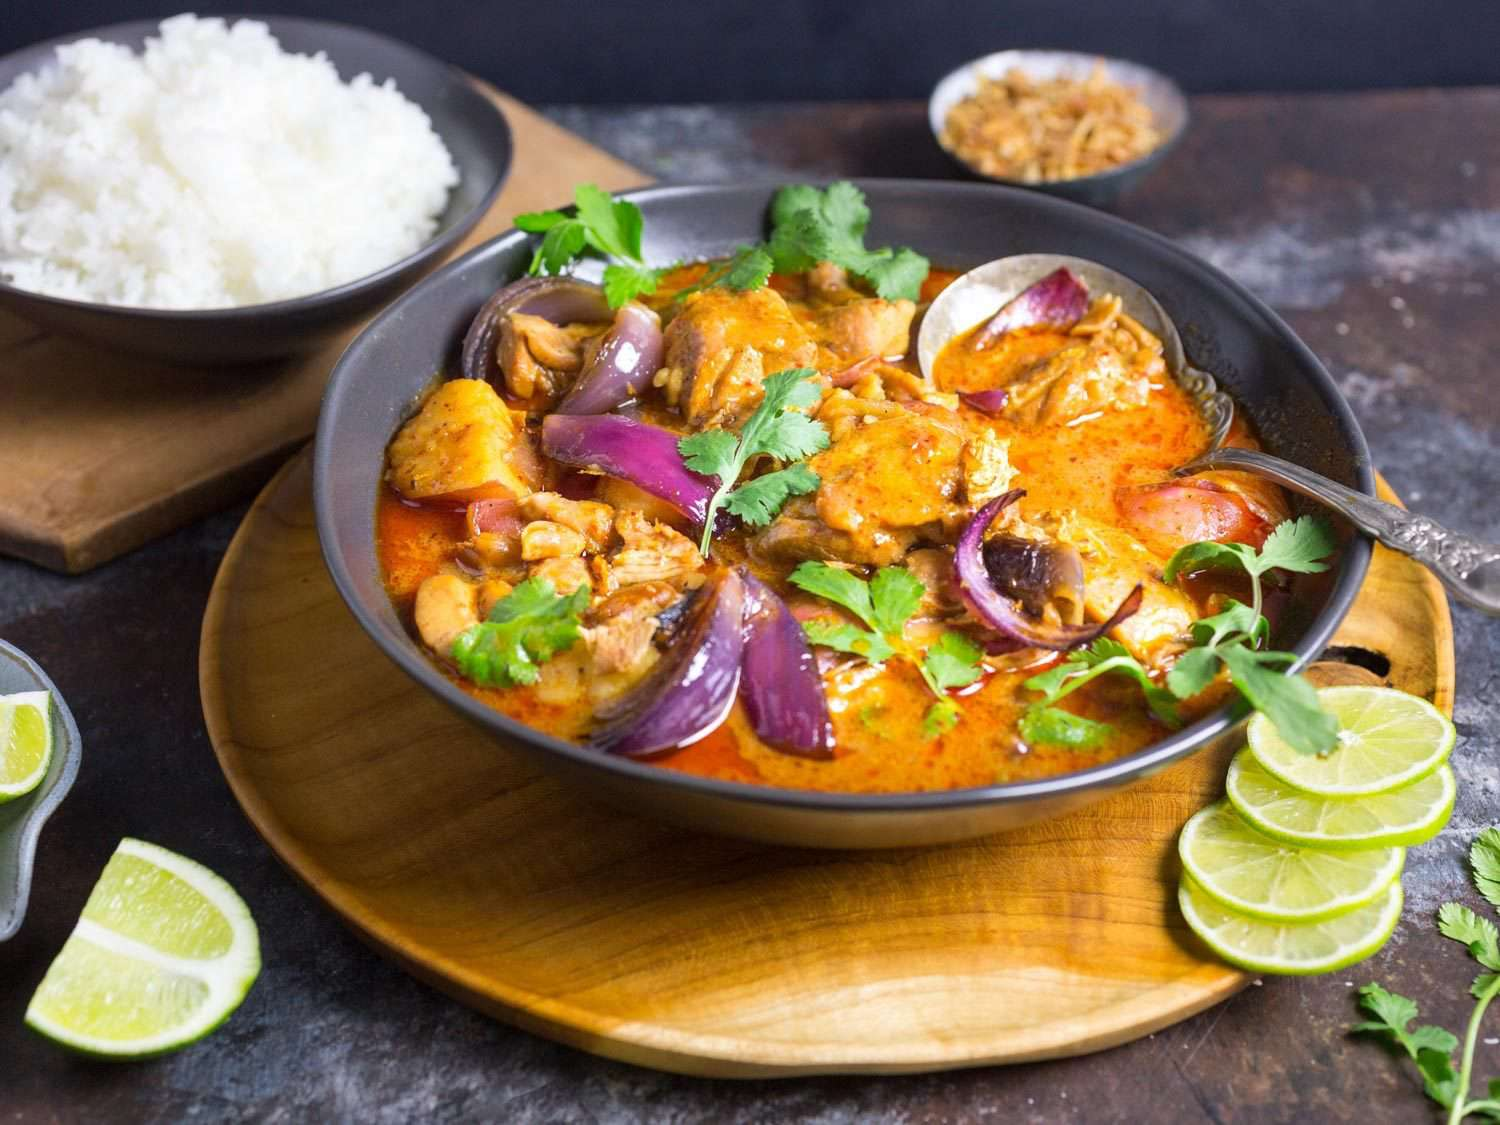 Photo of finished massaman curry in serving bowl surrounded by garnishes, with bowl of rice in background.